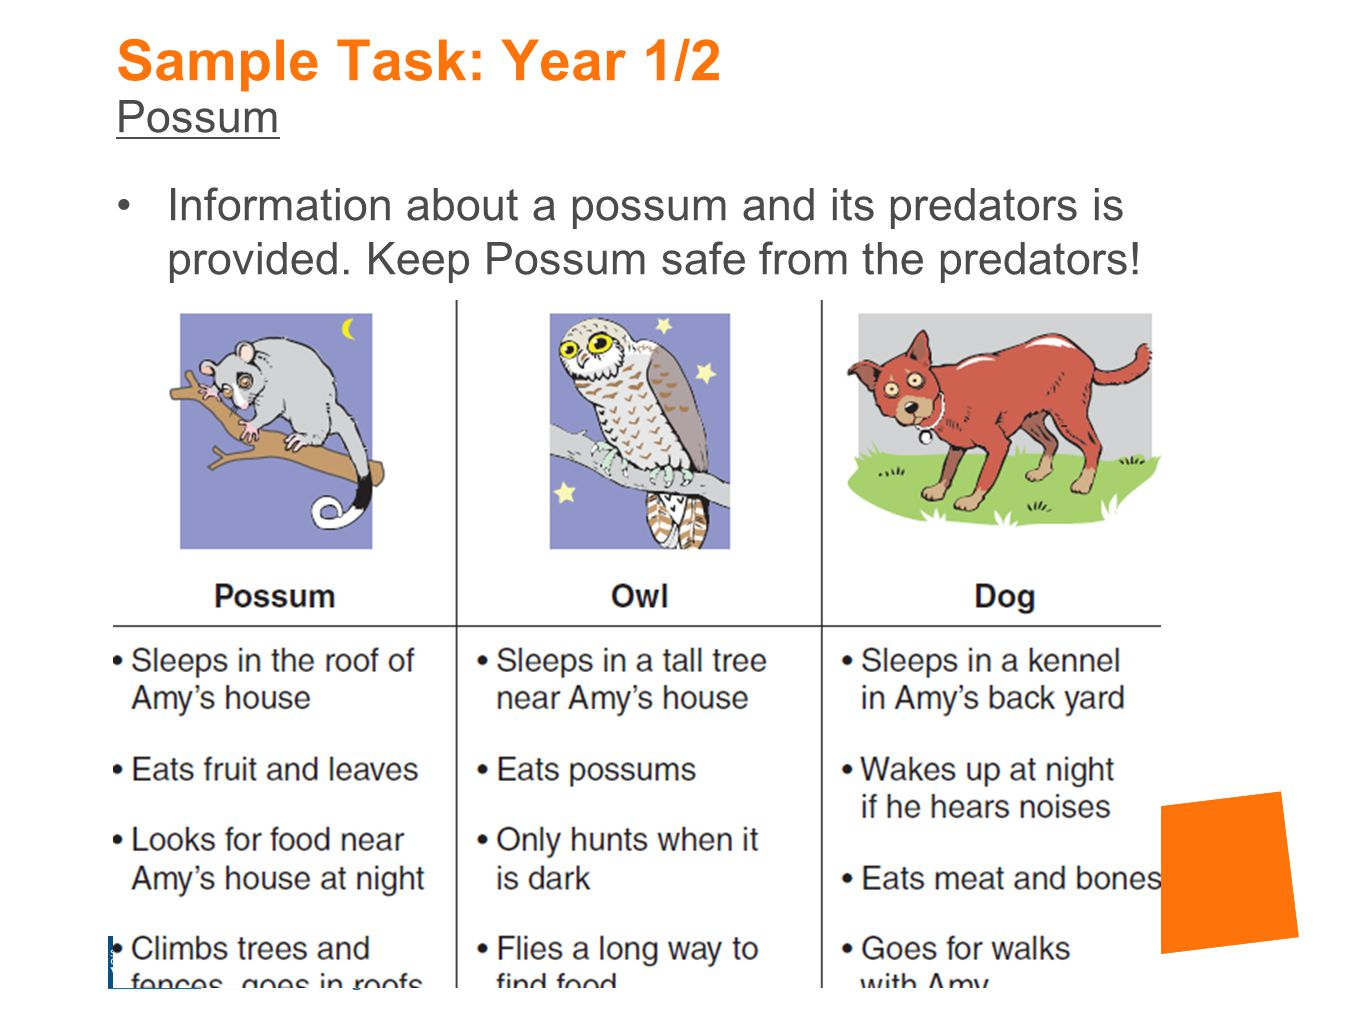 Sample Task: Year 1/2 Possum Information about a possum and its predators is provided. Keep Possum safe from the predators!